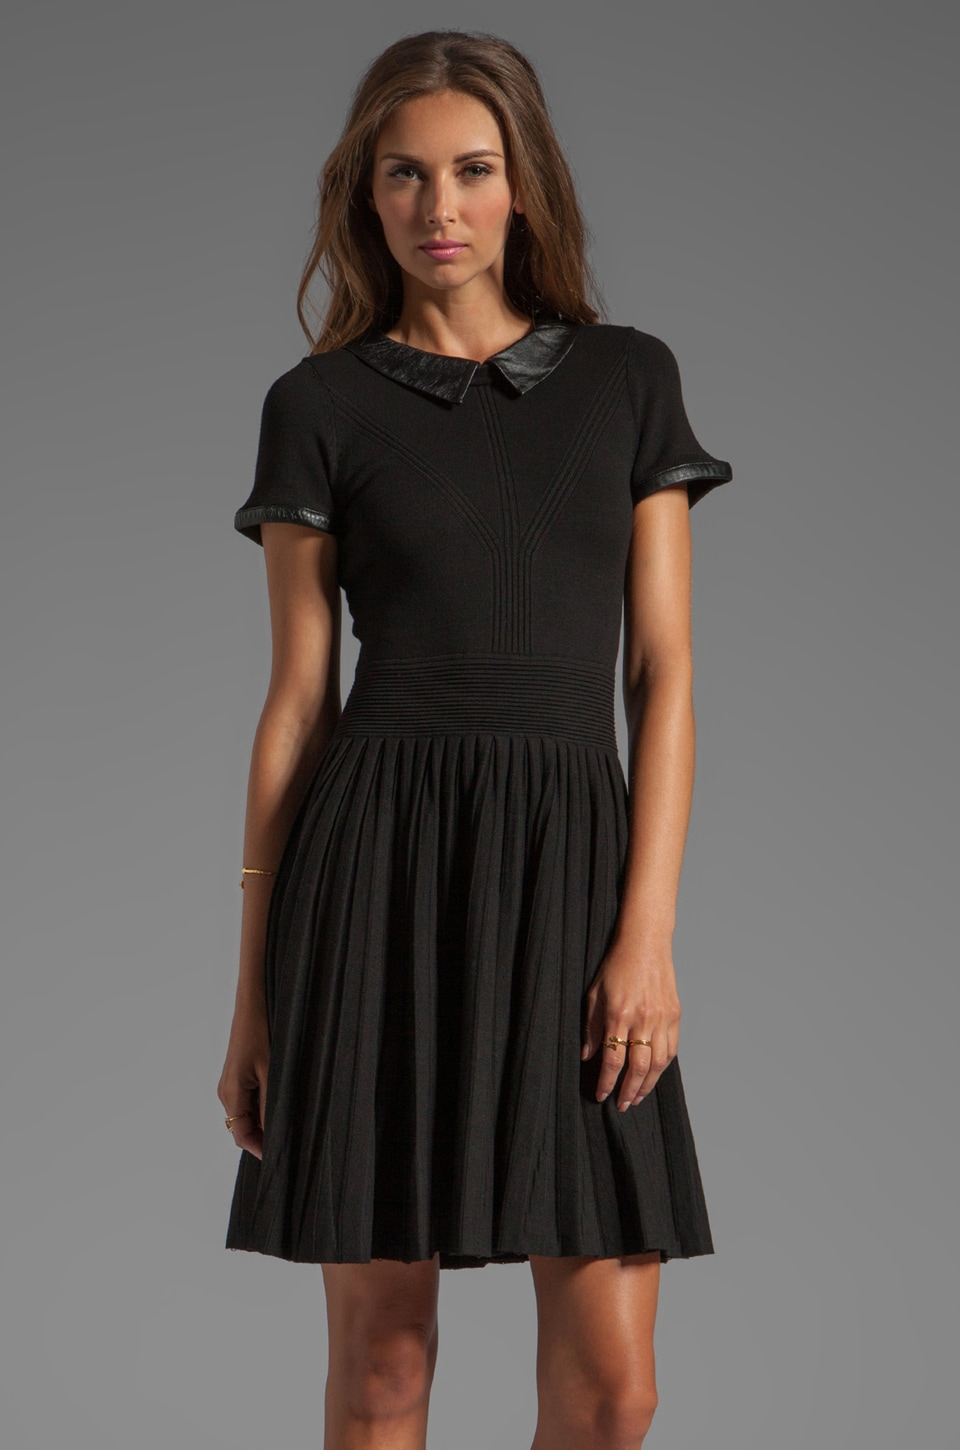 MILLY June Knits Leather Collar Josephine Dress in Black